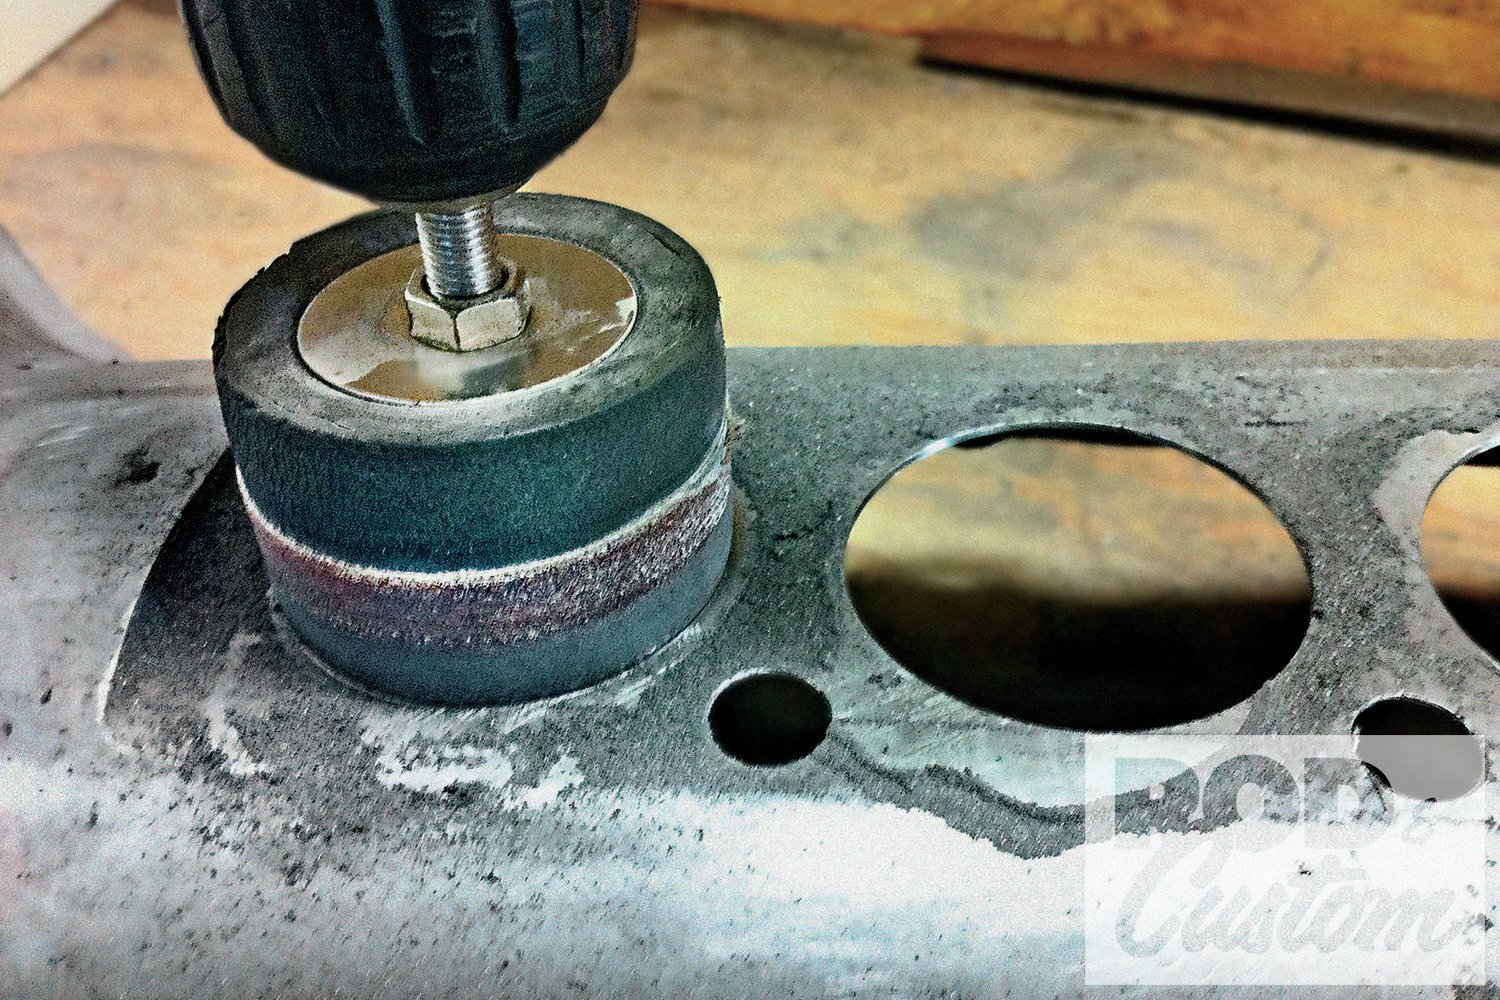 A drum sander was used to slightly enlarge the holes until each gauge was a press fit.